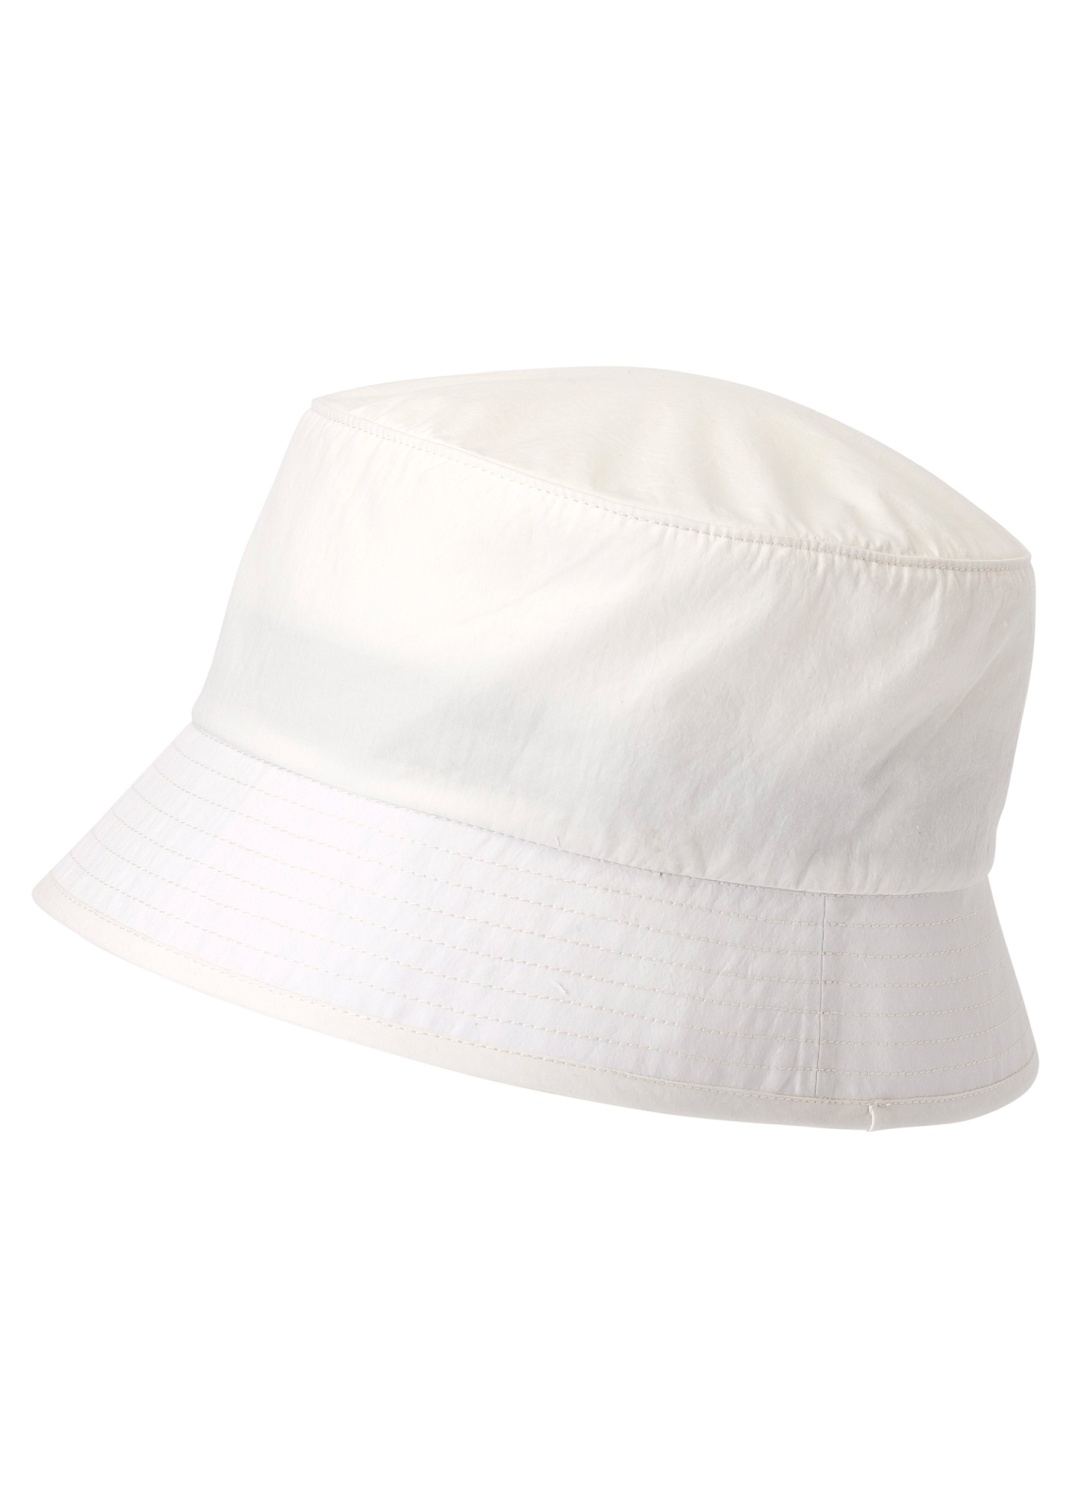 Laced Bucket Hat image number 0